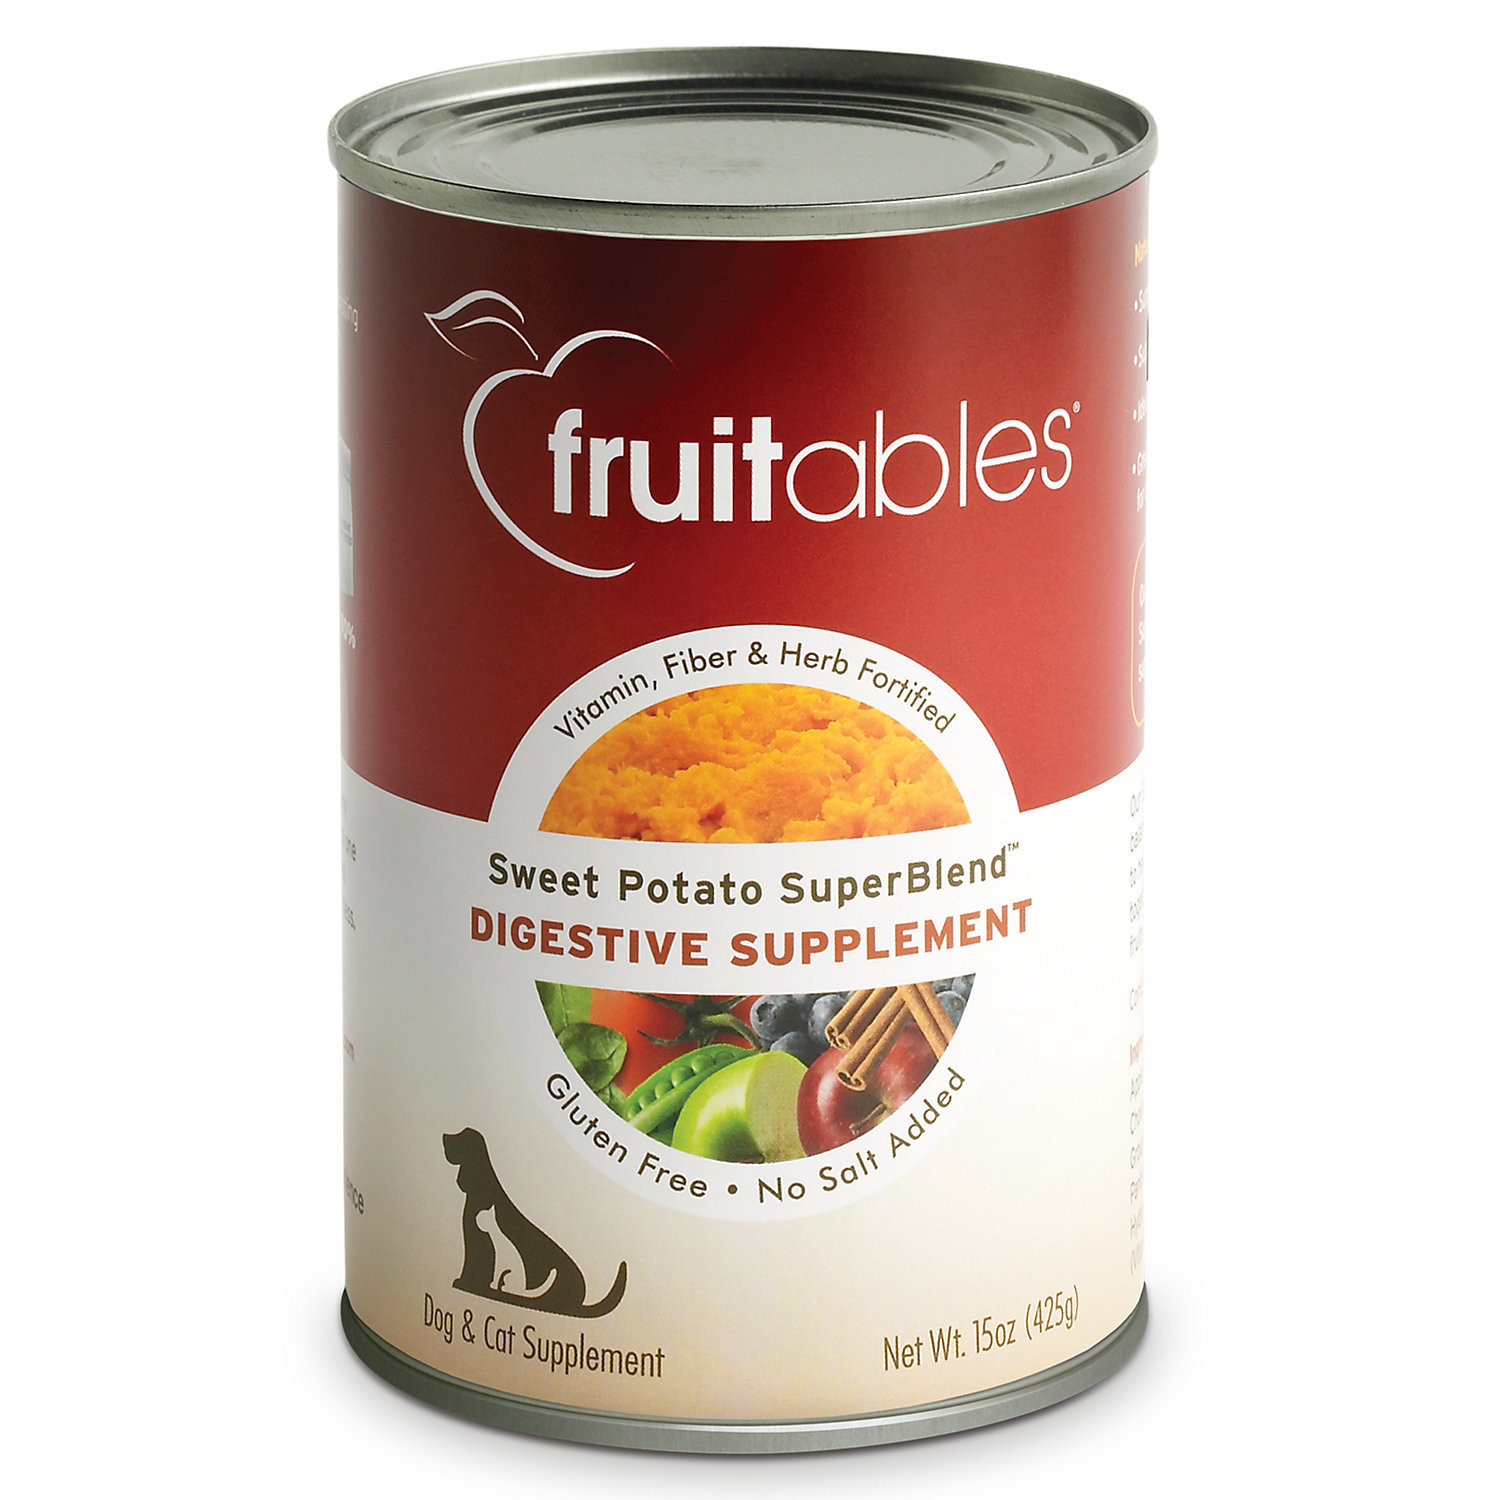 Fruitables Sweet Potato Digestive Supplement Dogs & Cats Can Food (15 oz) SINGLE CANS